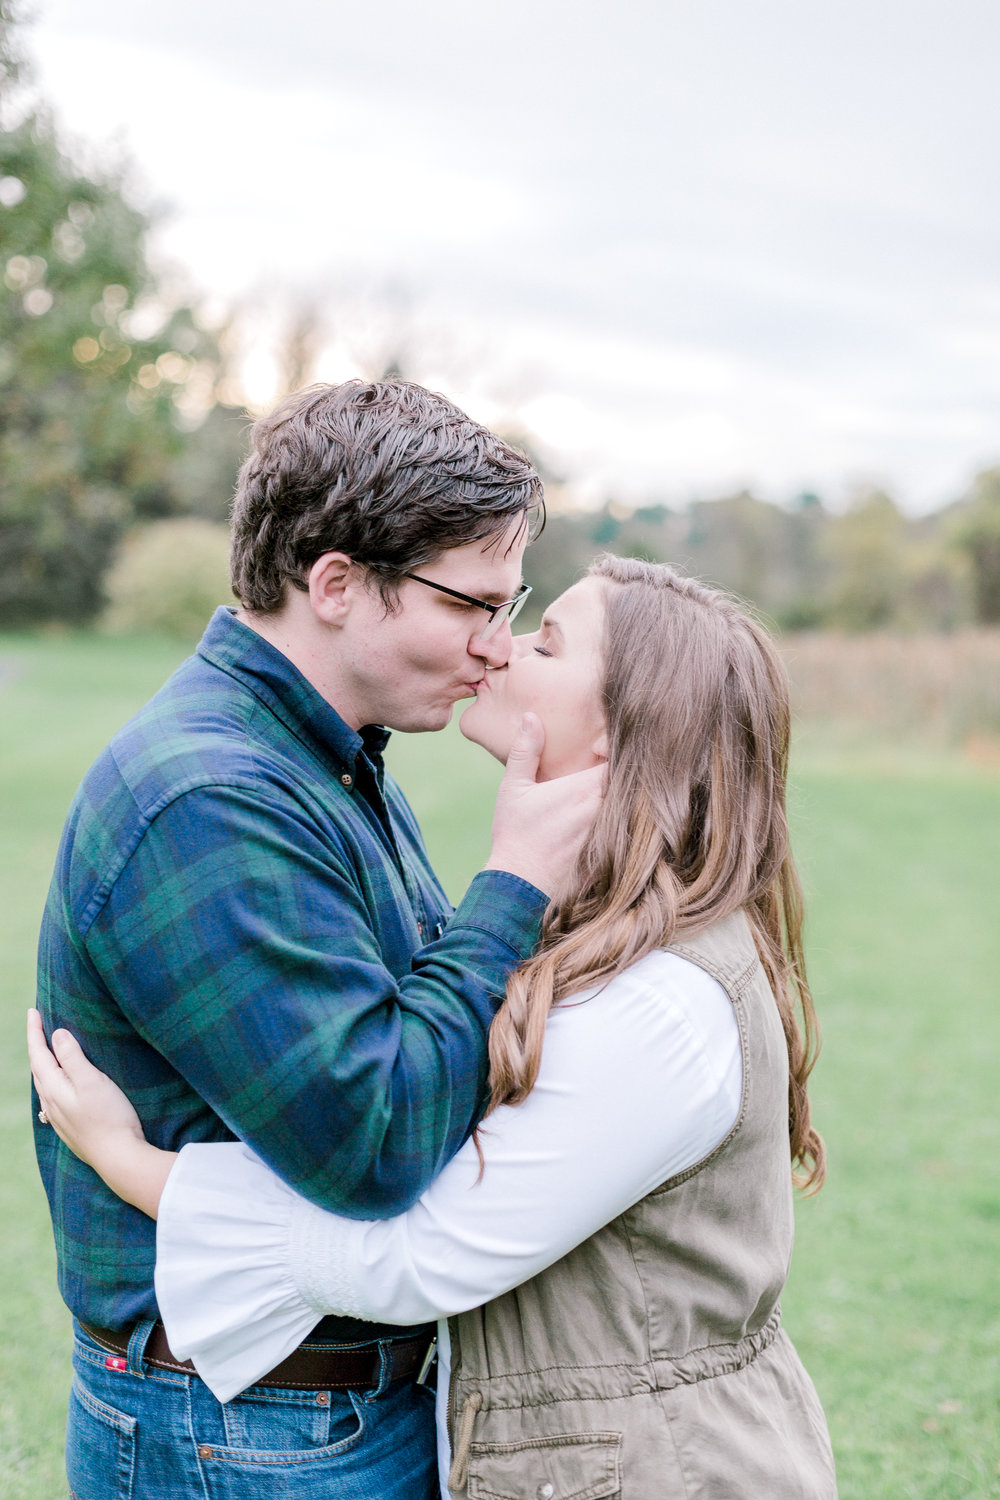 Lehigh valley Fish hatchery fall Engagement Session wedding and lifestyle photographer Lytle Photo Co (60 of 66).jpg